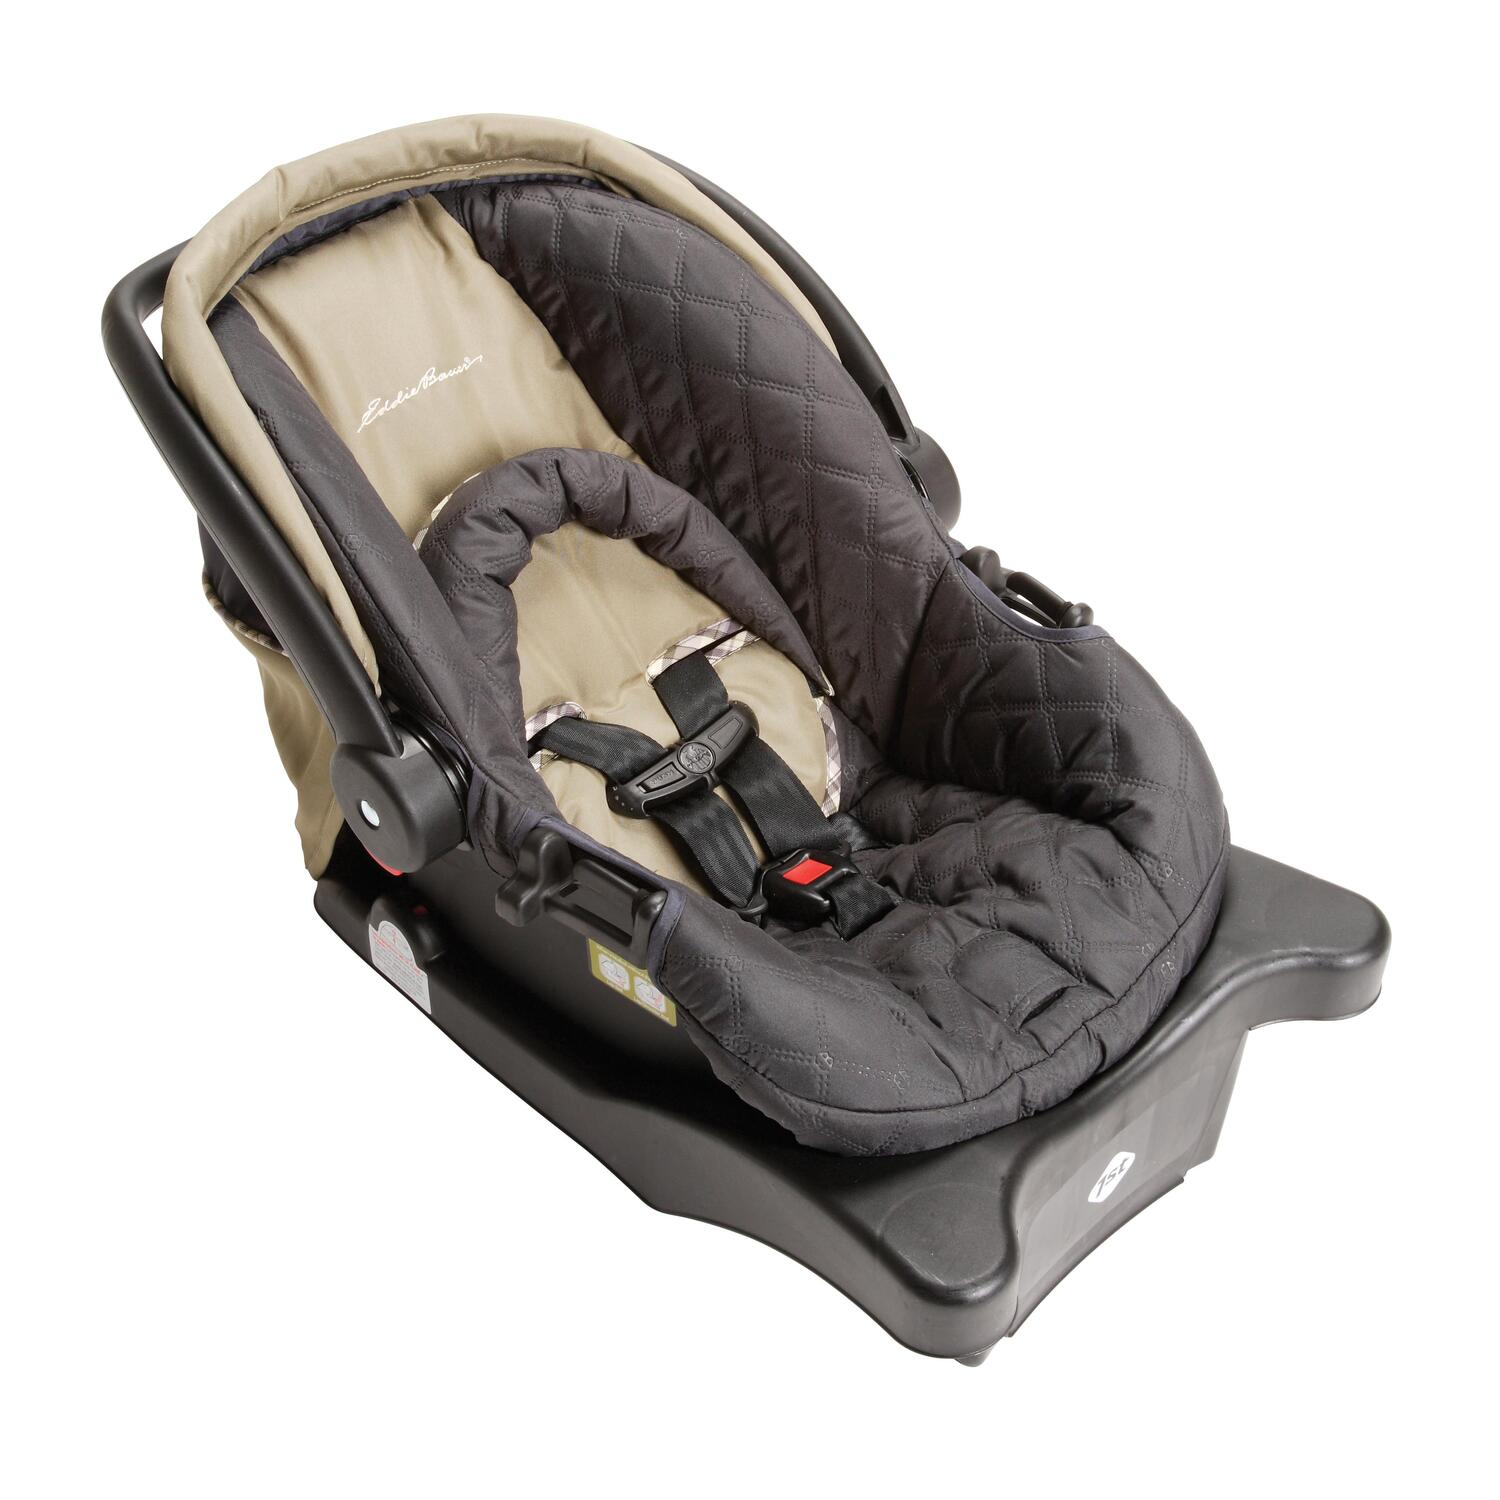 Eddie Bauer Surefit Infant Car Seat Base Taupe